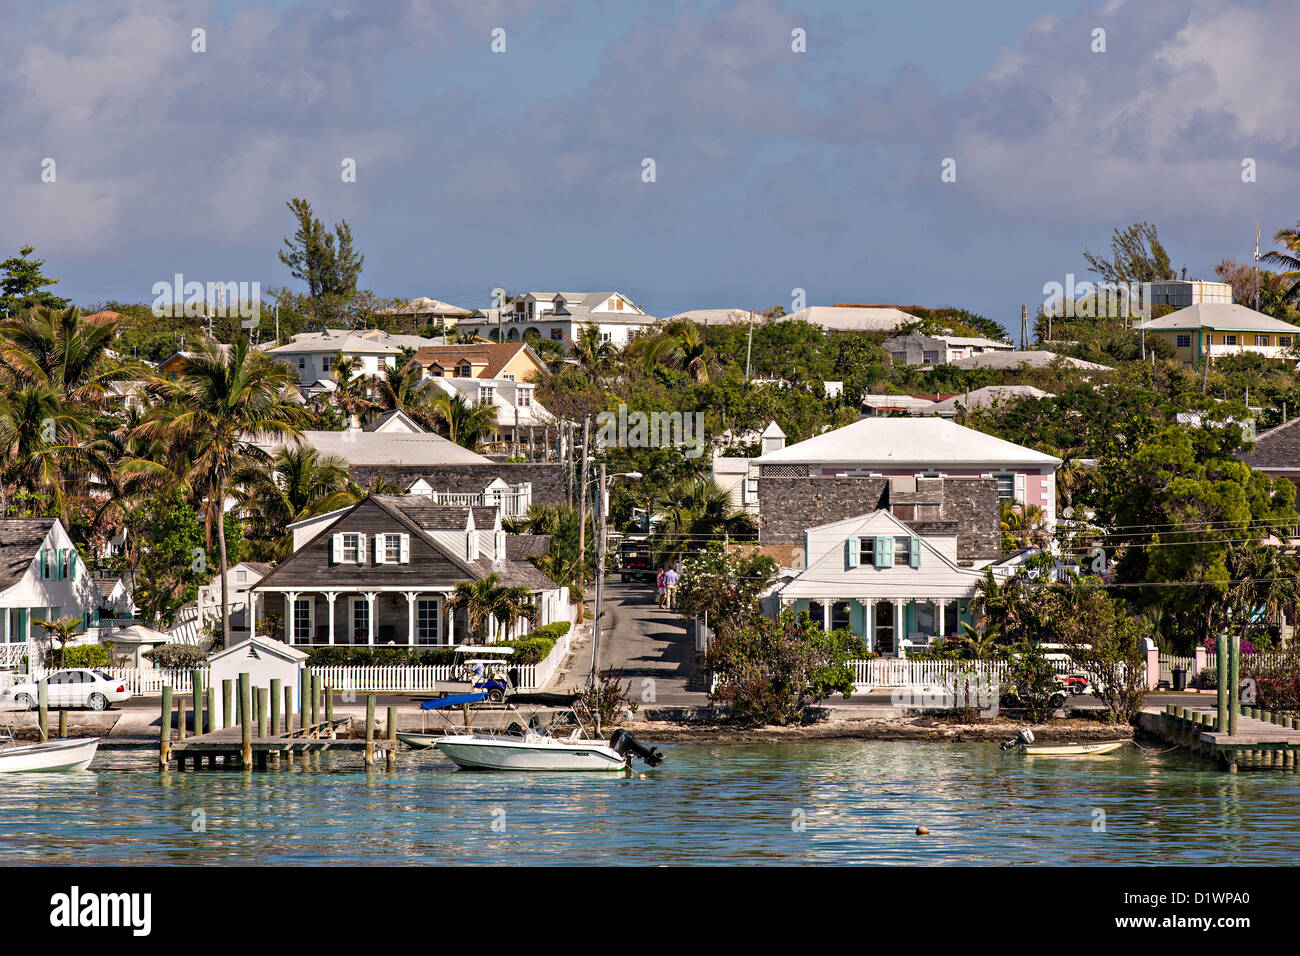 dunmore town harbour island the bahamas D1WPA0